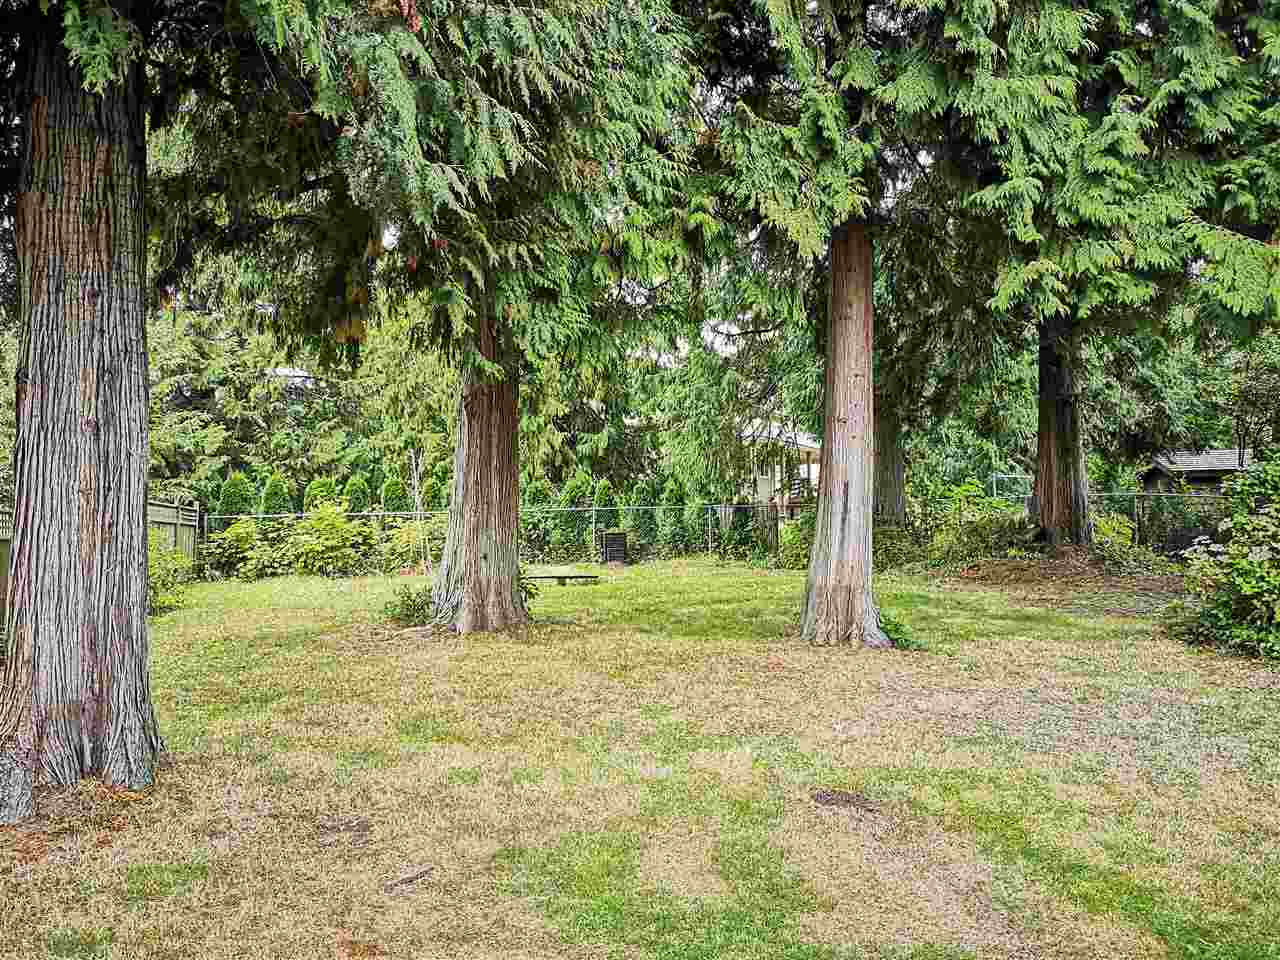 1448 BONNIEBROOK HEIGHTS ROAD - Gibsons & Area House/Single Family for sale, 3 Bedrooms (R2482137) - #18